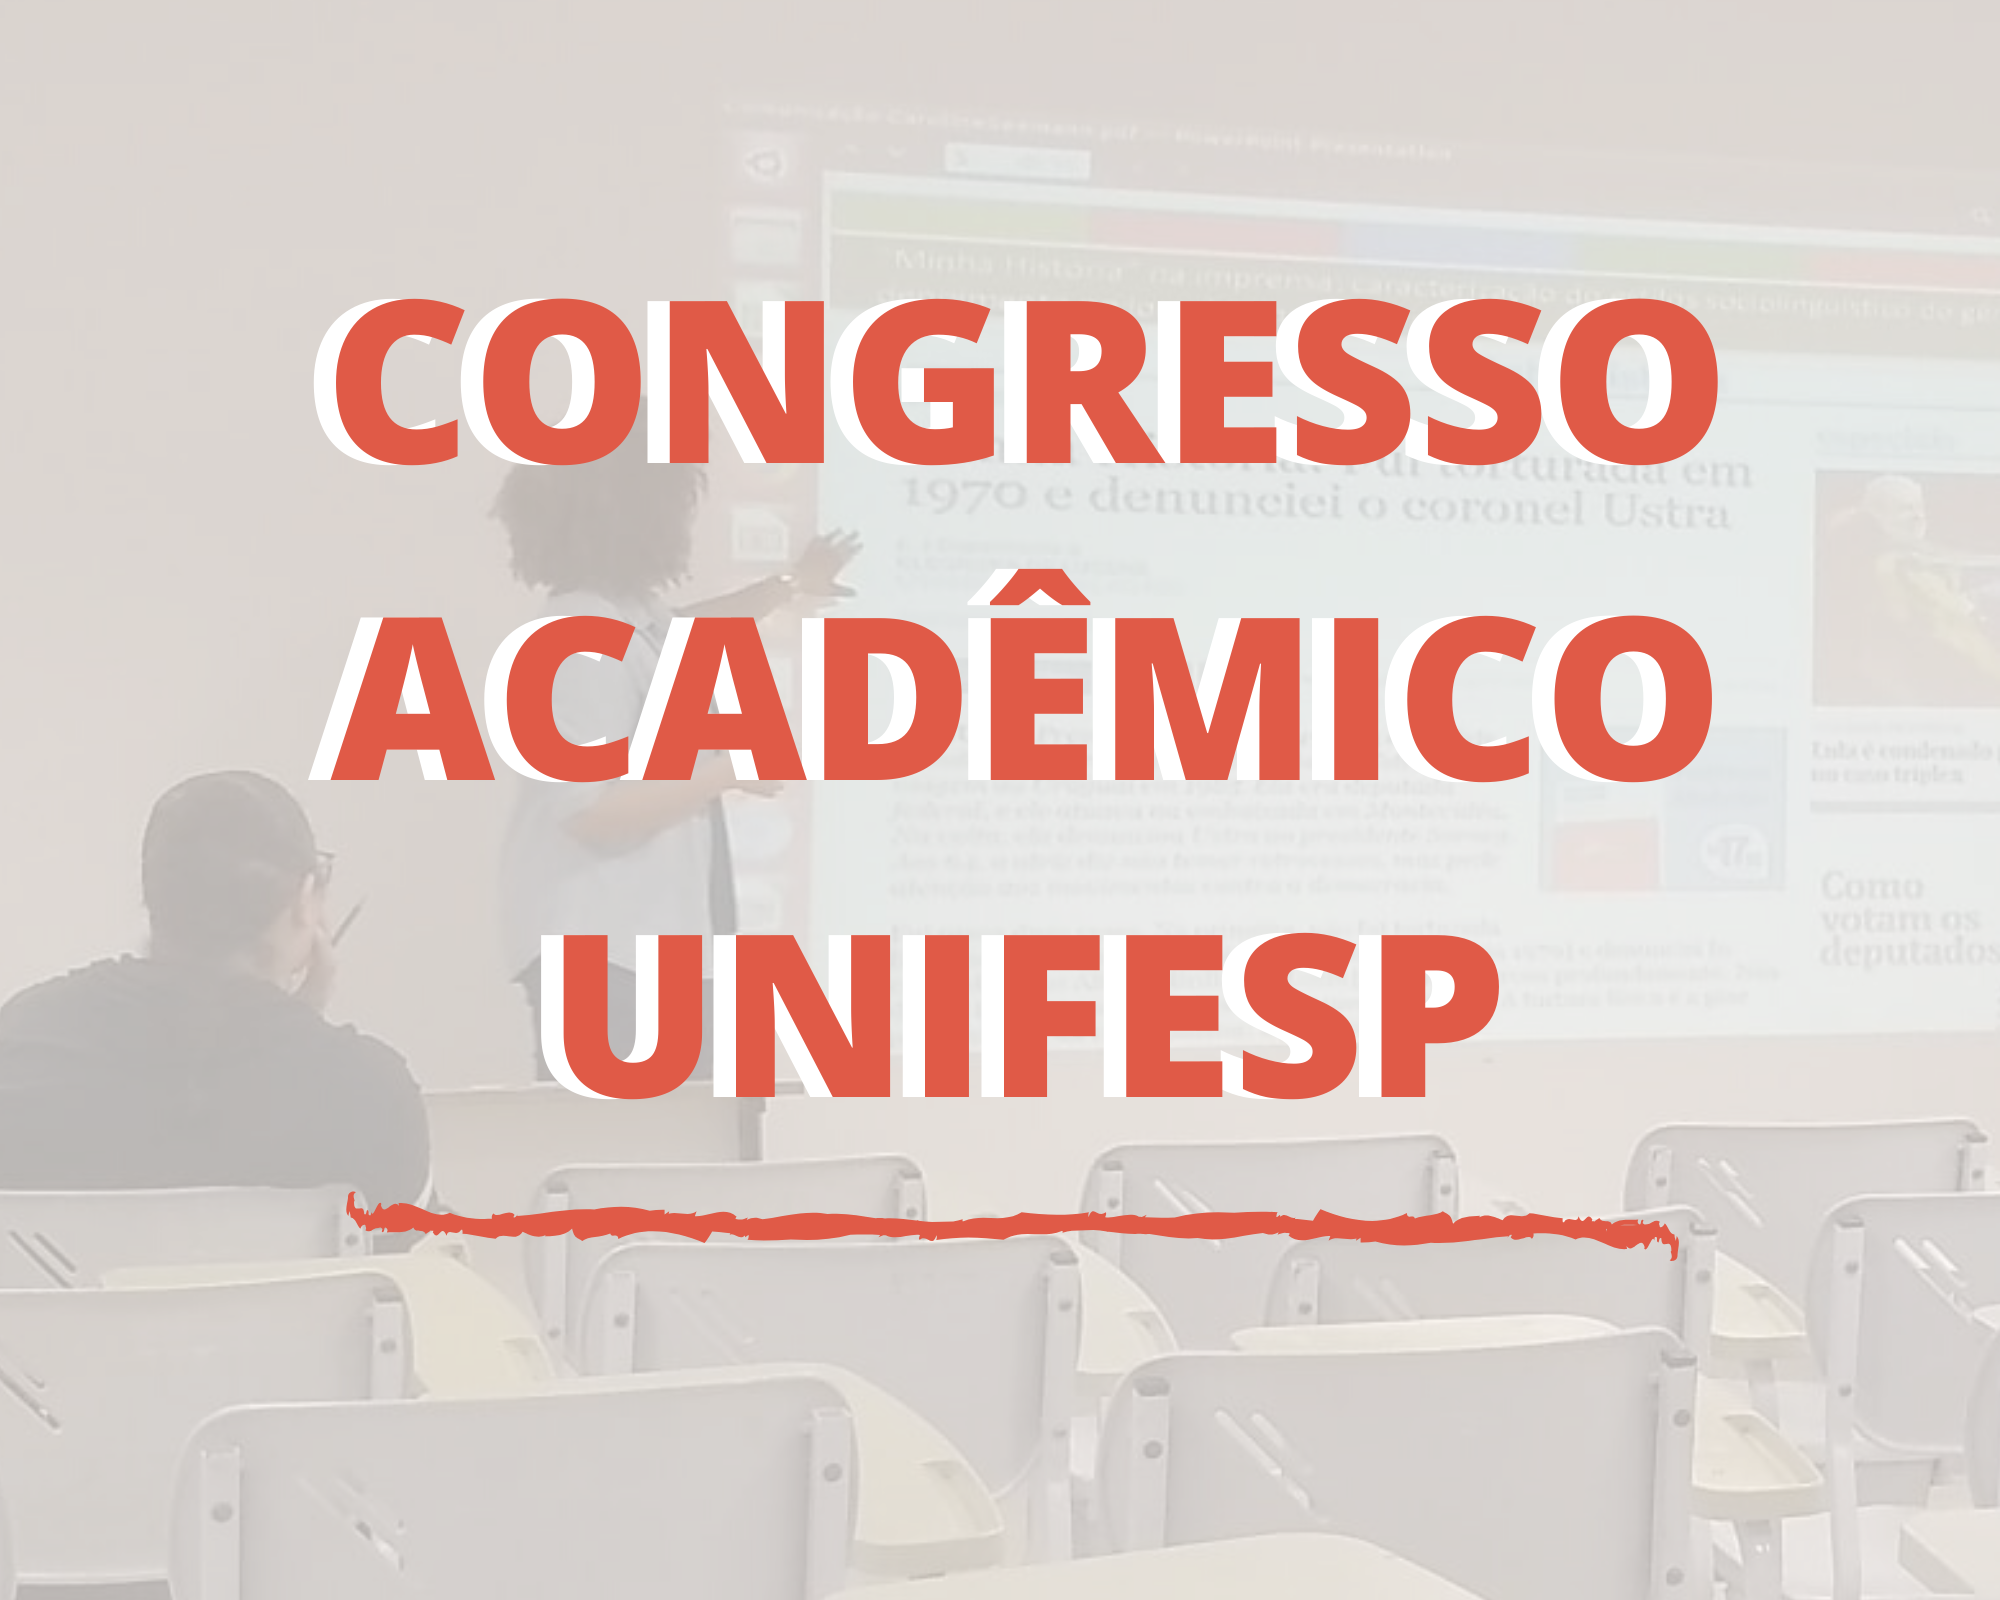 CONGRESSO_ACADEMICO_UNIFESP.png